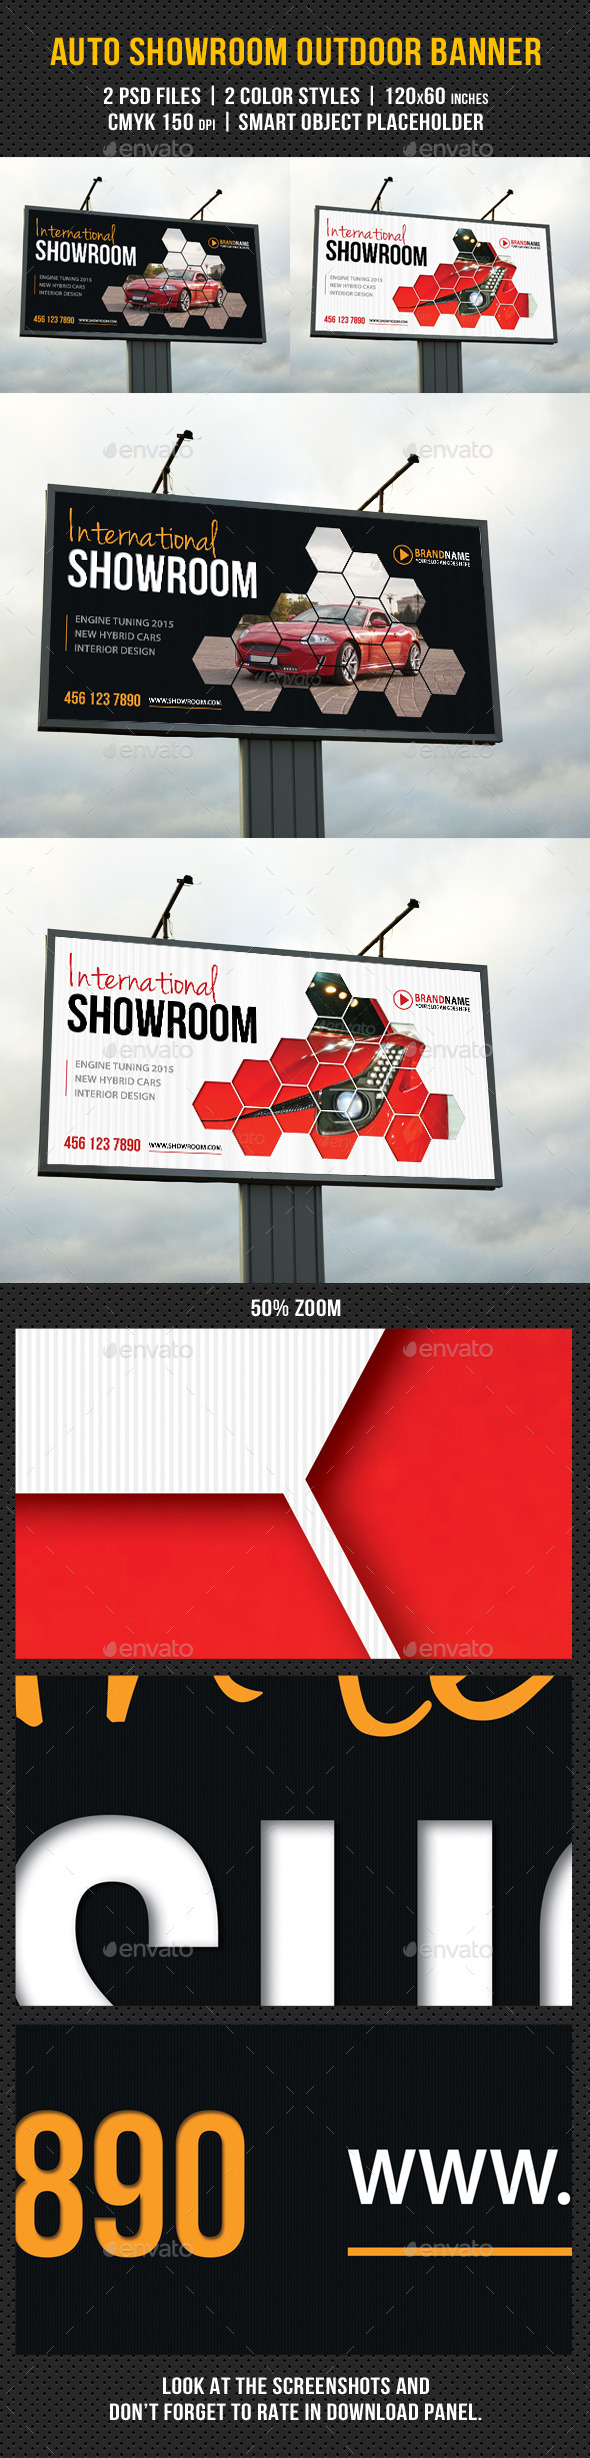 GraphicRiver Auto Showroom Outdoor Banner 03 8932043